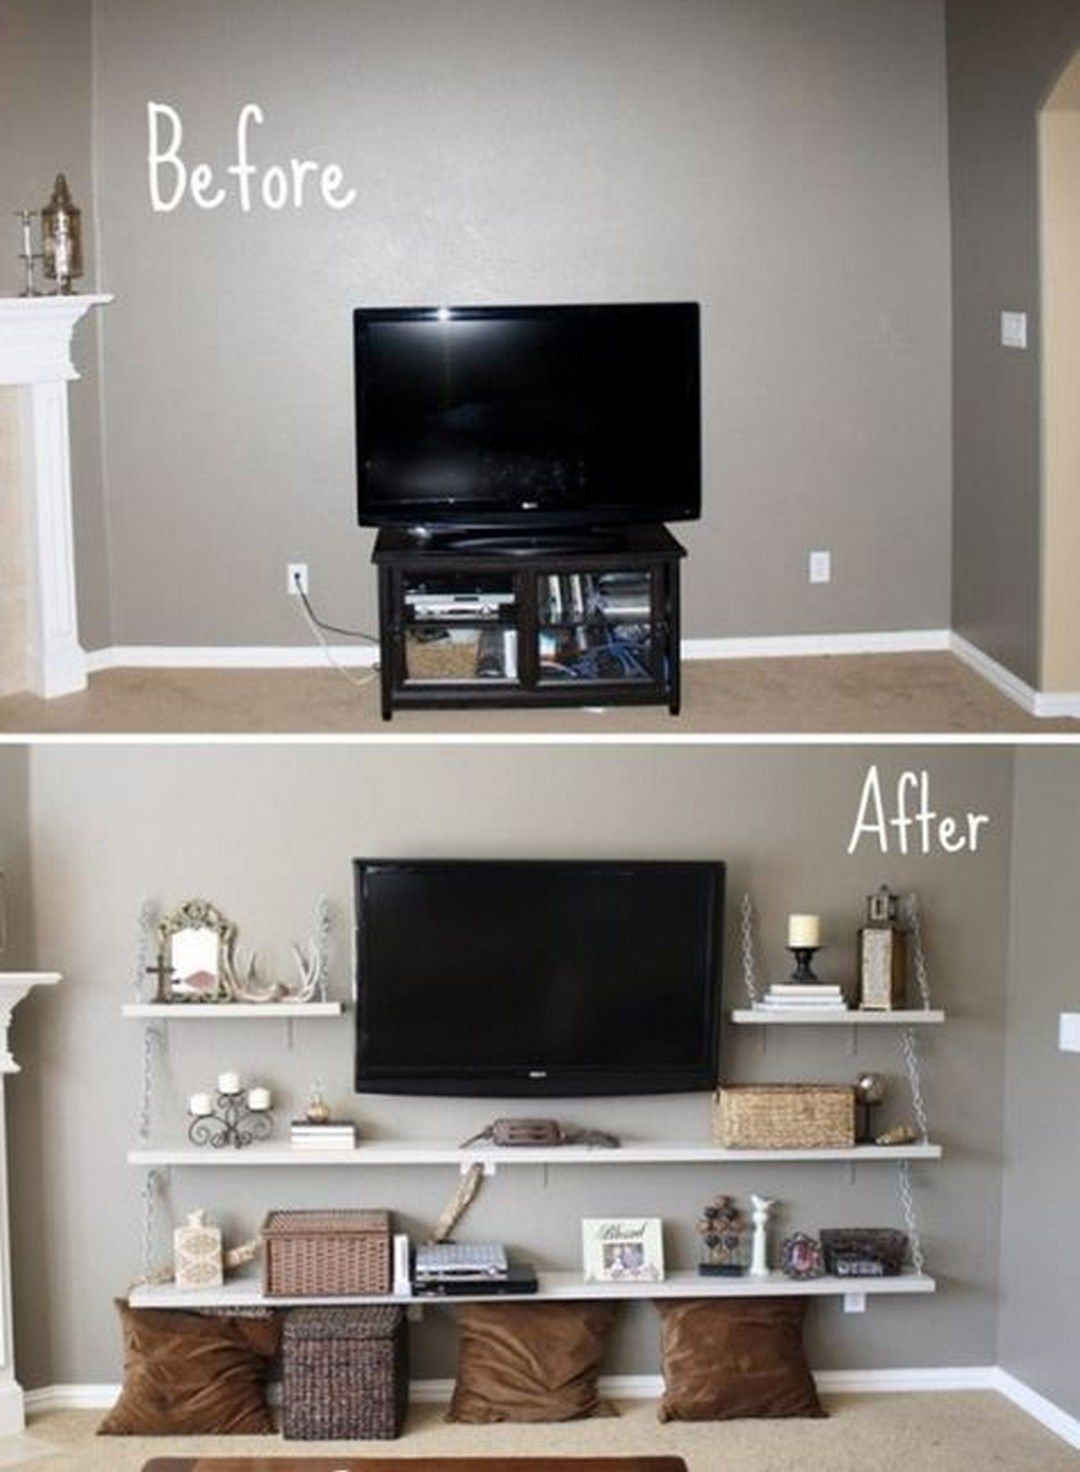 Delightful 99 DIY Home Decor Ideas On A Budget You Must Try (48)